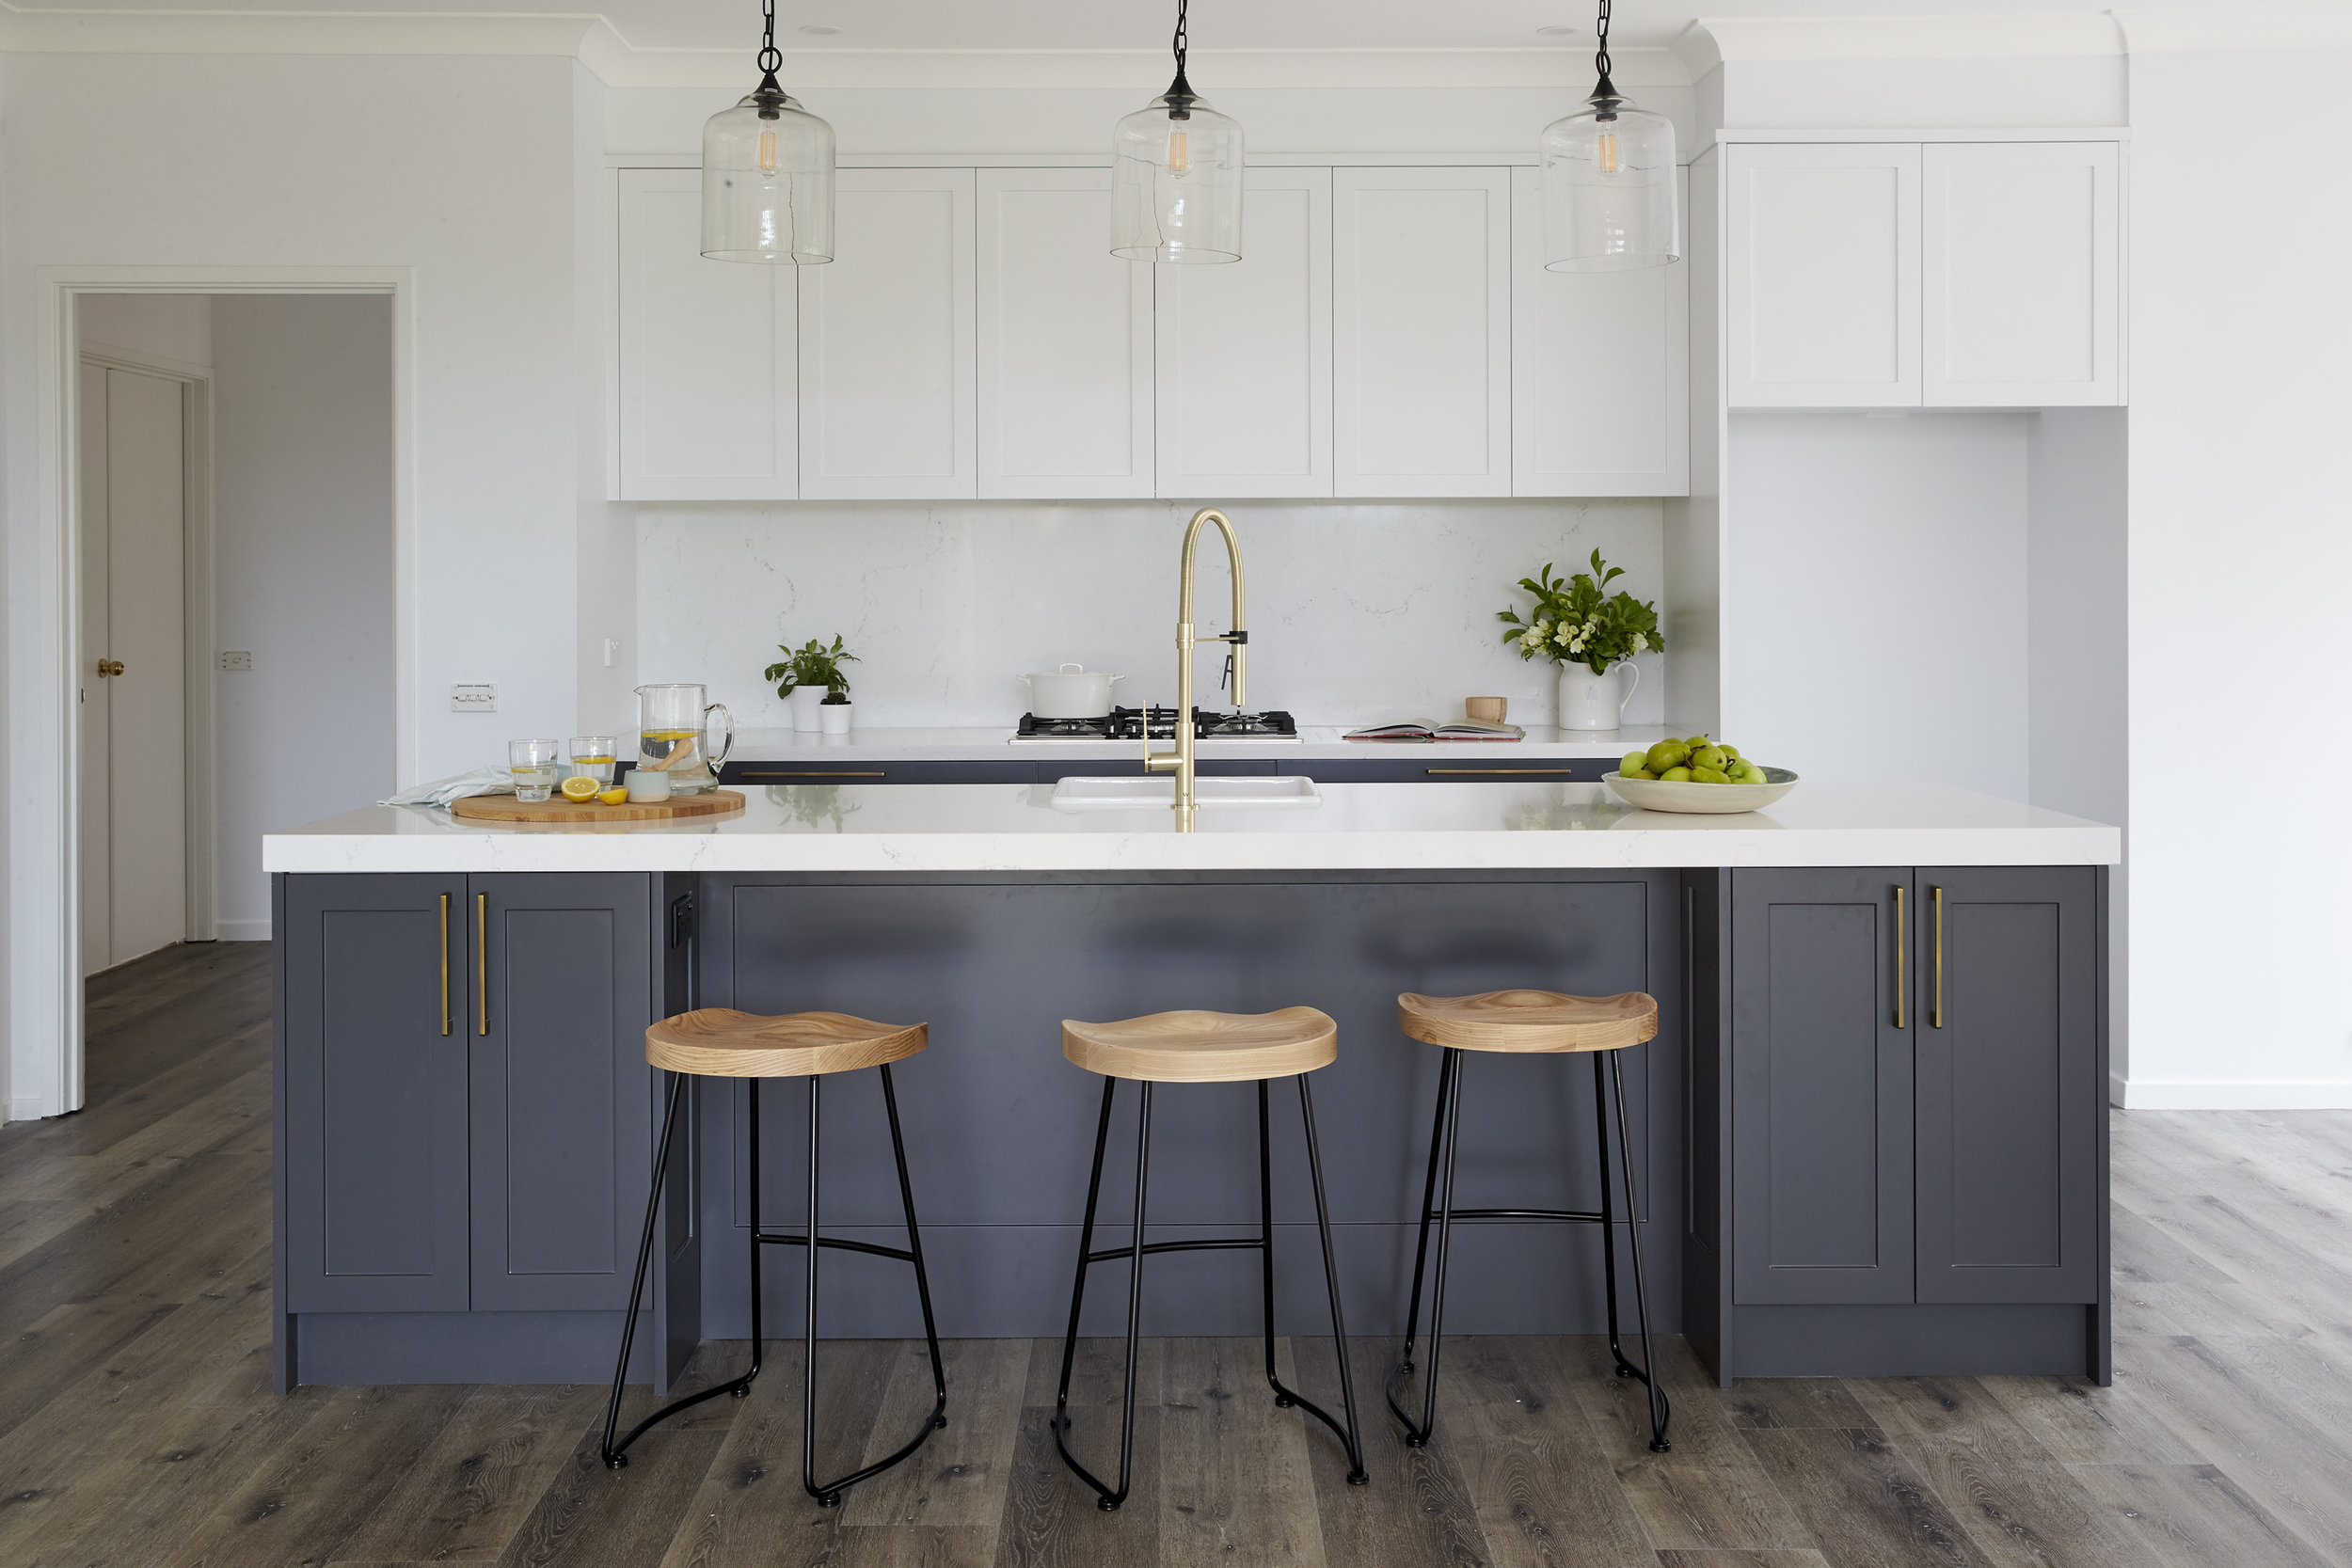 HOME by belle Kitchen Willoughby photo 2.jpg